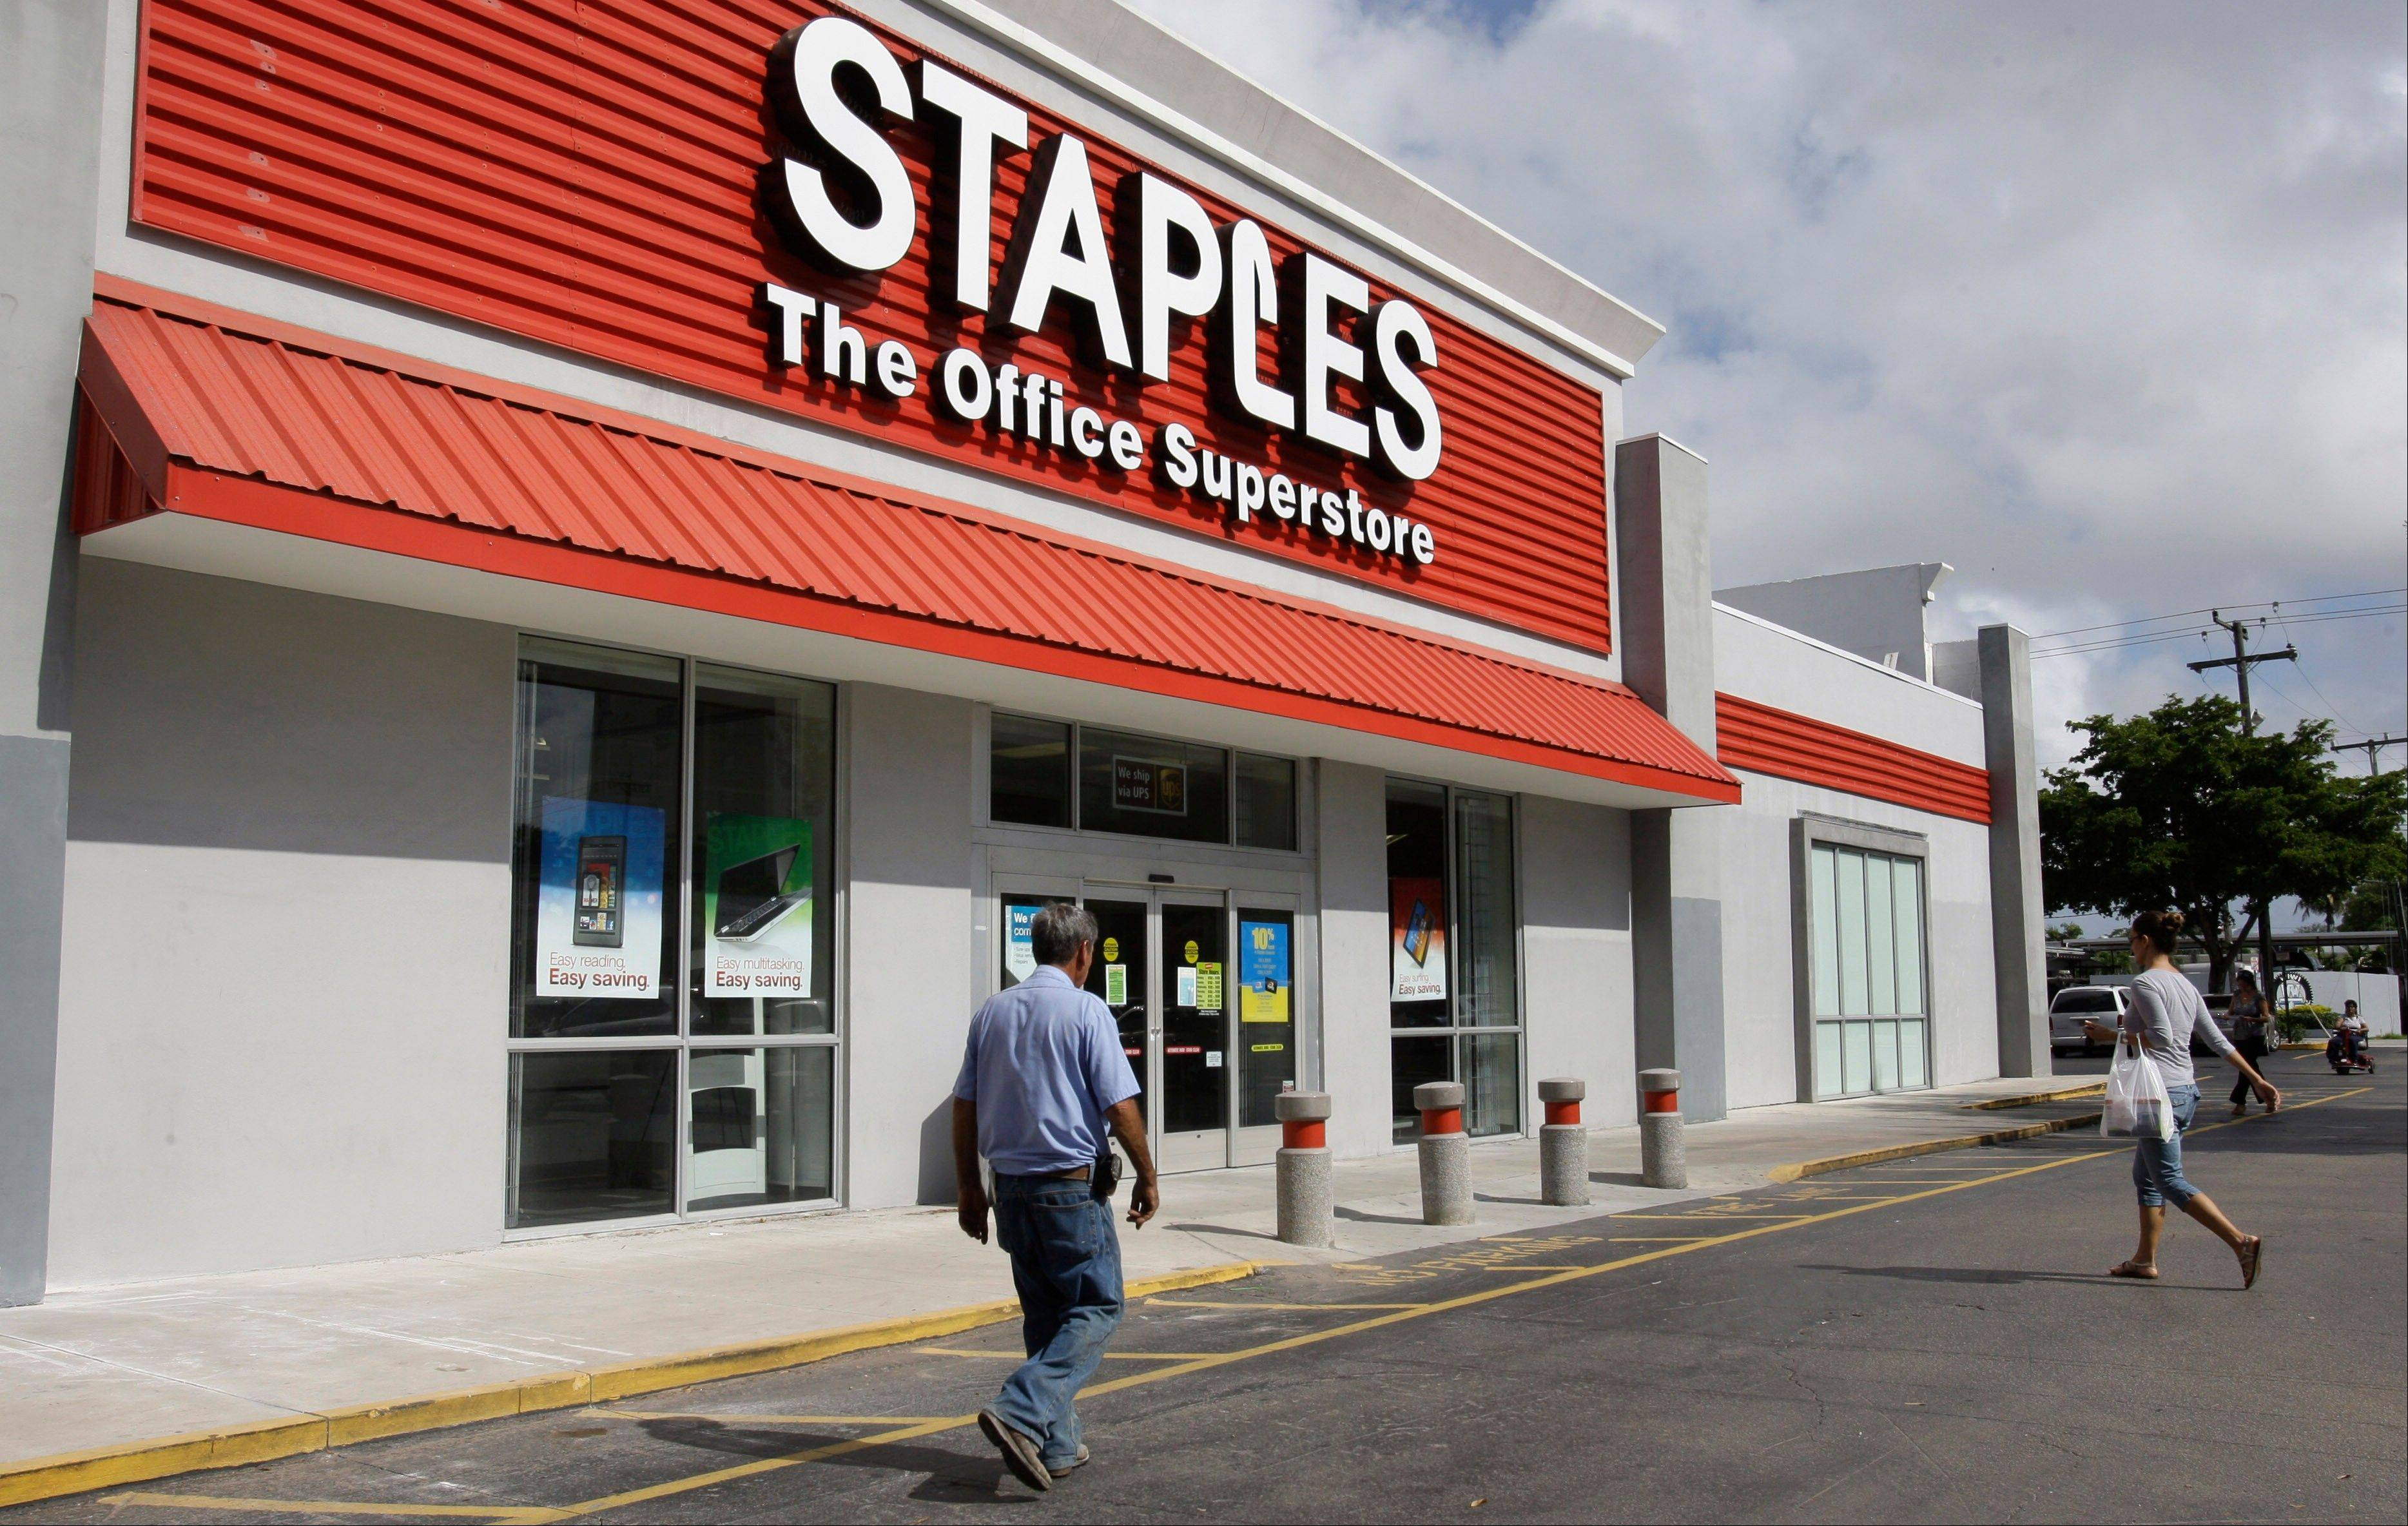 The opening of Postal Service retail centers in dozens of Staples stores around the country is being met with threats of protests and boycotts by the agency�s unions.